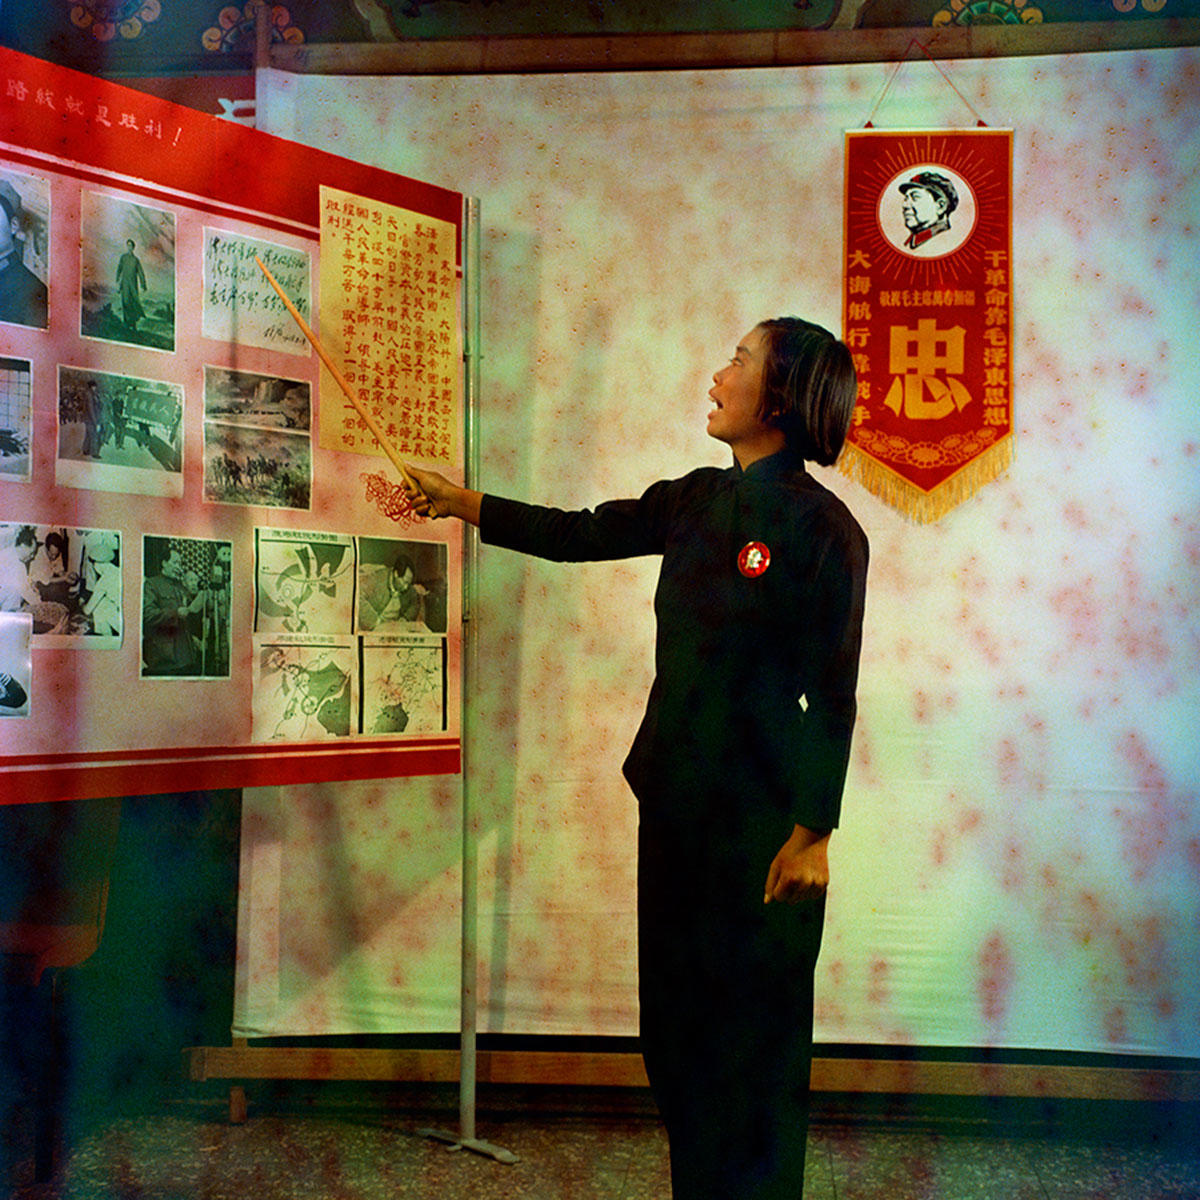 ■-蒙敏生-Meng-Minsheng-■-毛泽东思想宣传员Propaganda-Secretary-of-Mao-Zedong-Thought-■-1970